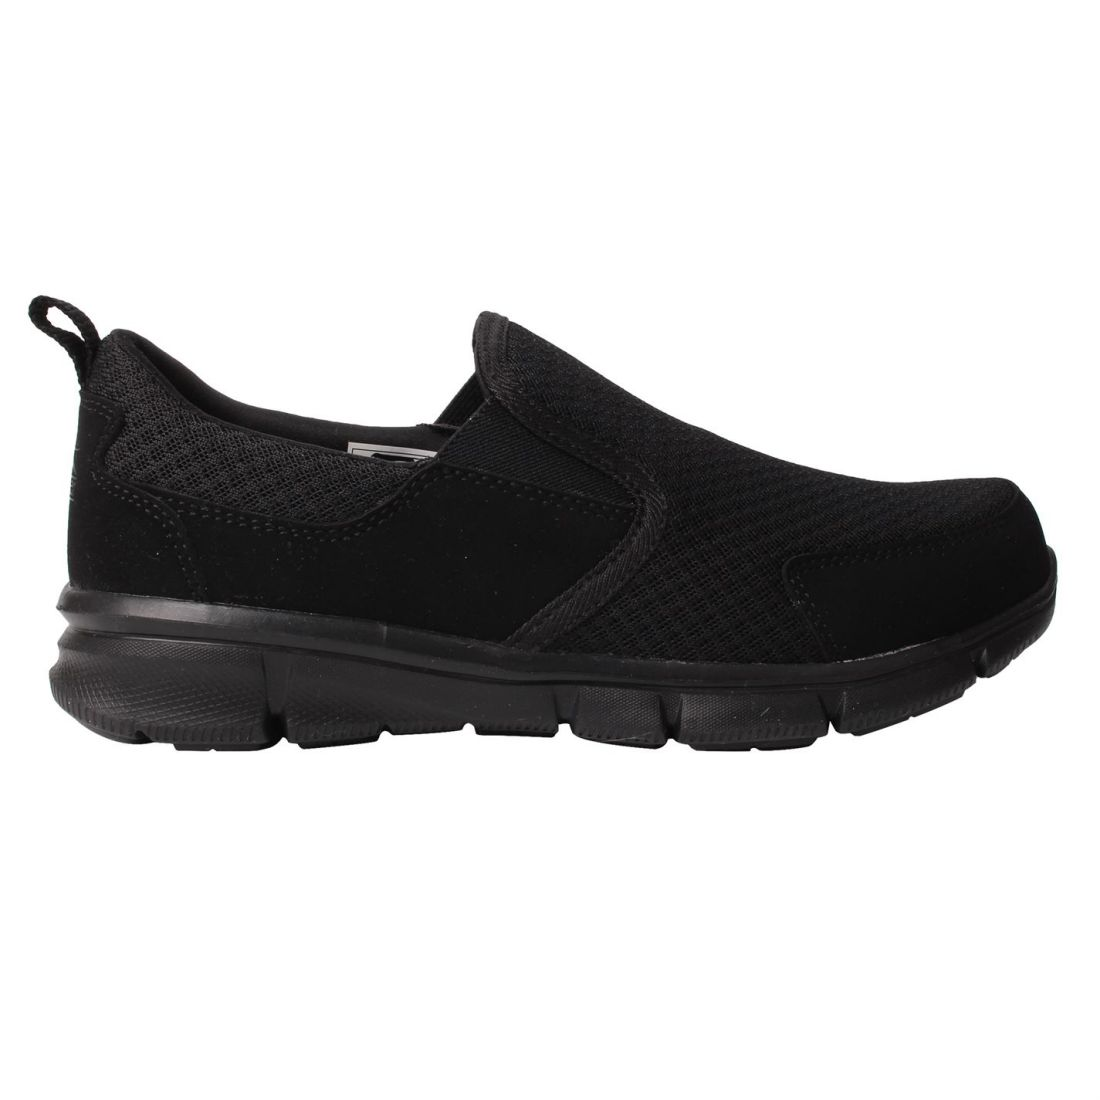 99b60a4bae Details about Slazenger Mens Zeal Slip On Trainers Textile Memory Foam  Everyday Shoes